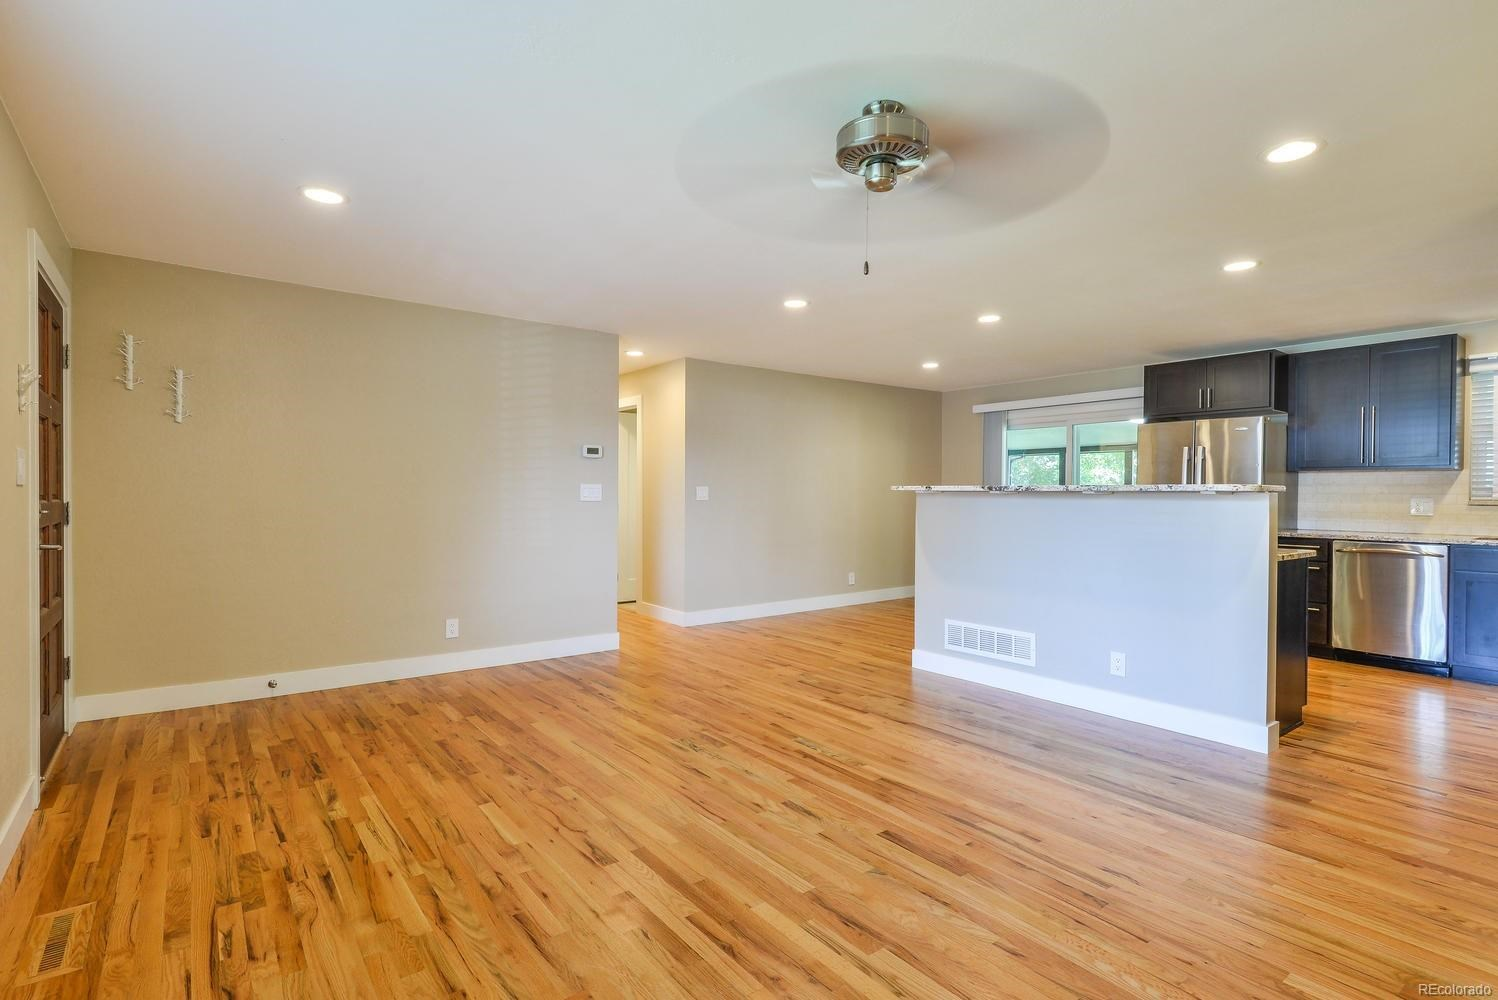 MLS# 1645833 - 3 - 1924 Springfield Drive, Fort Collins, CO 80521